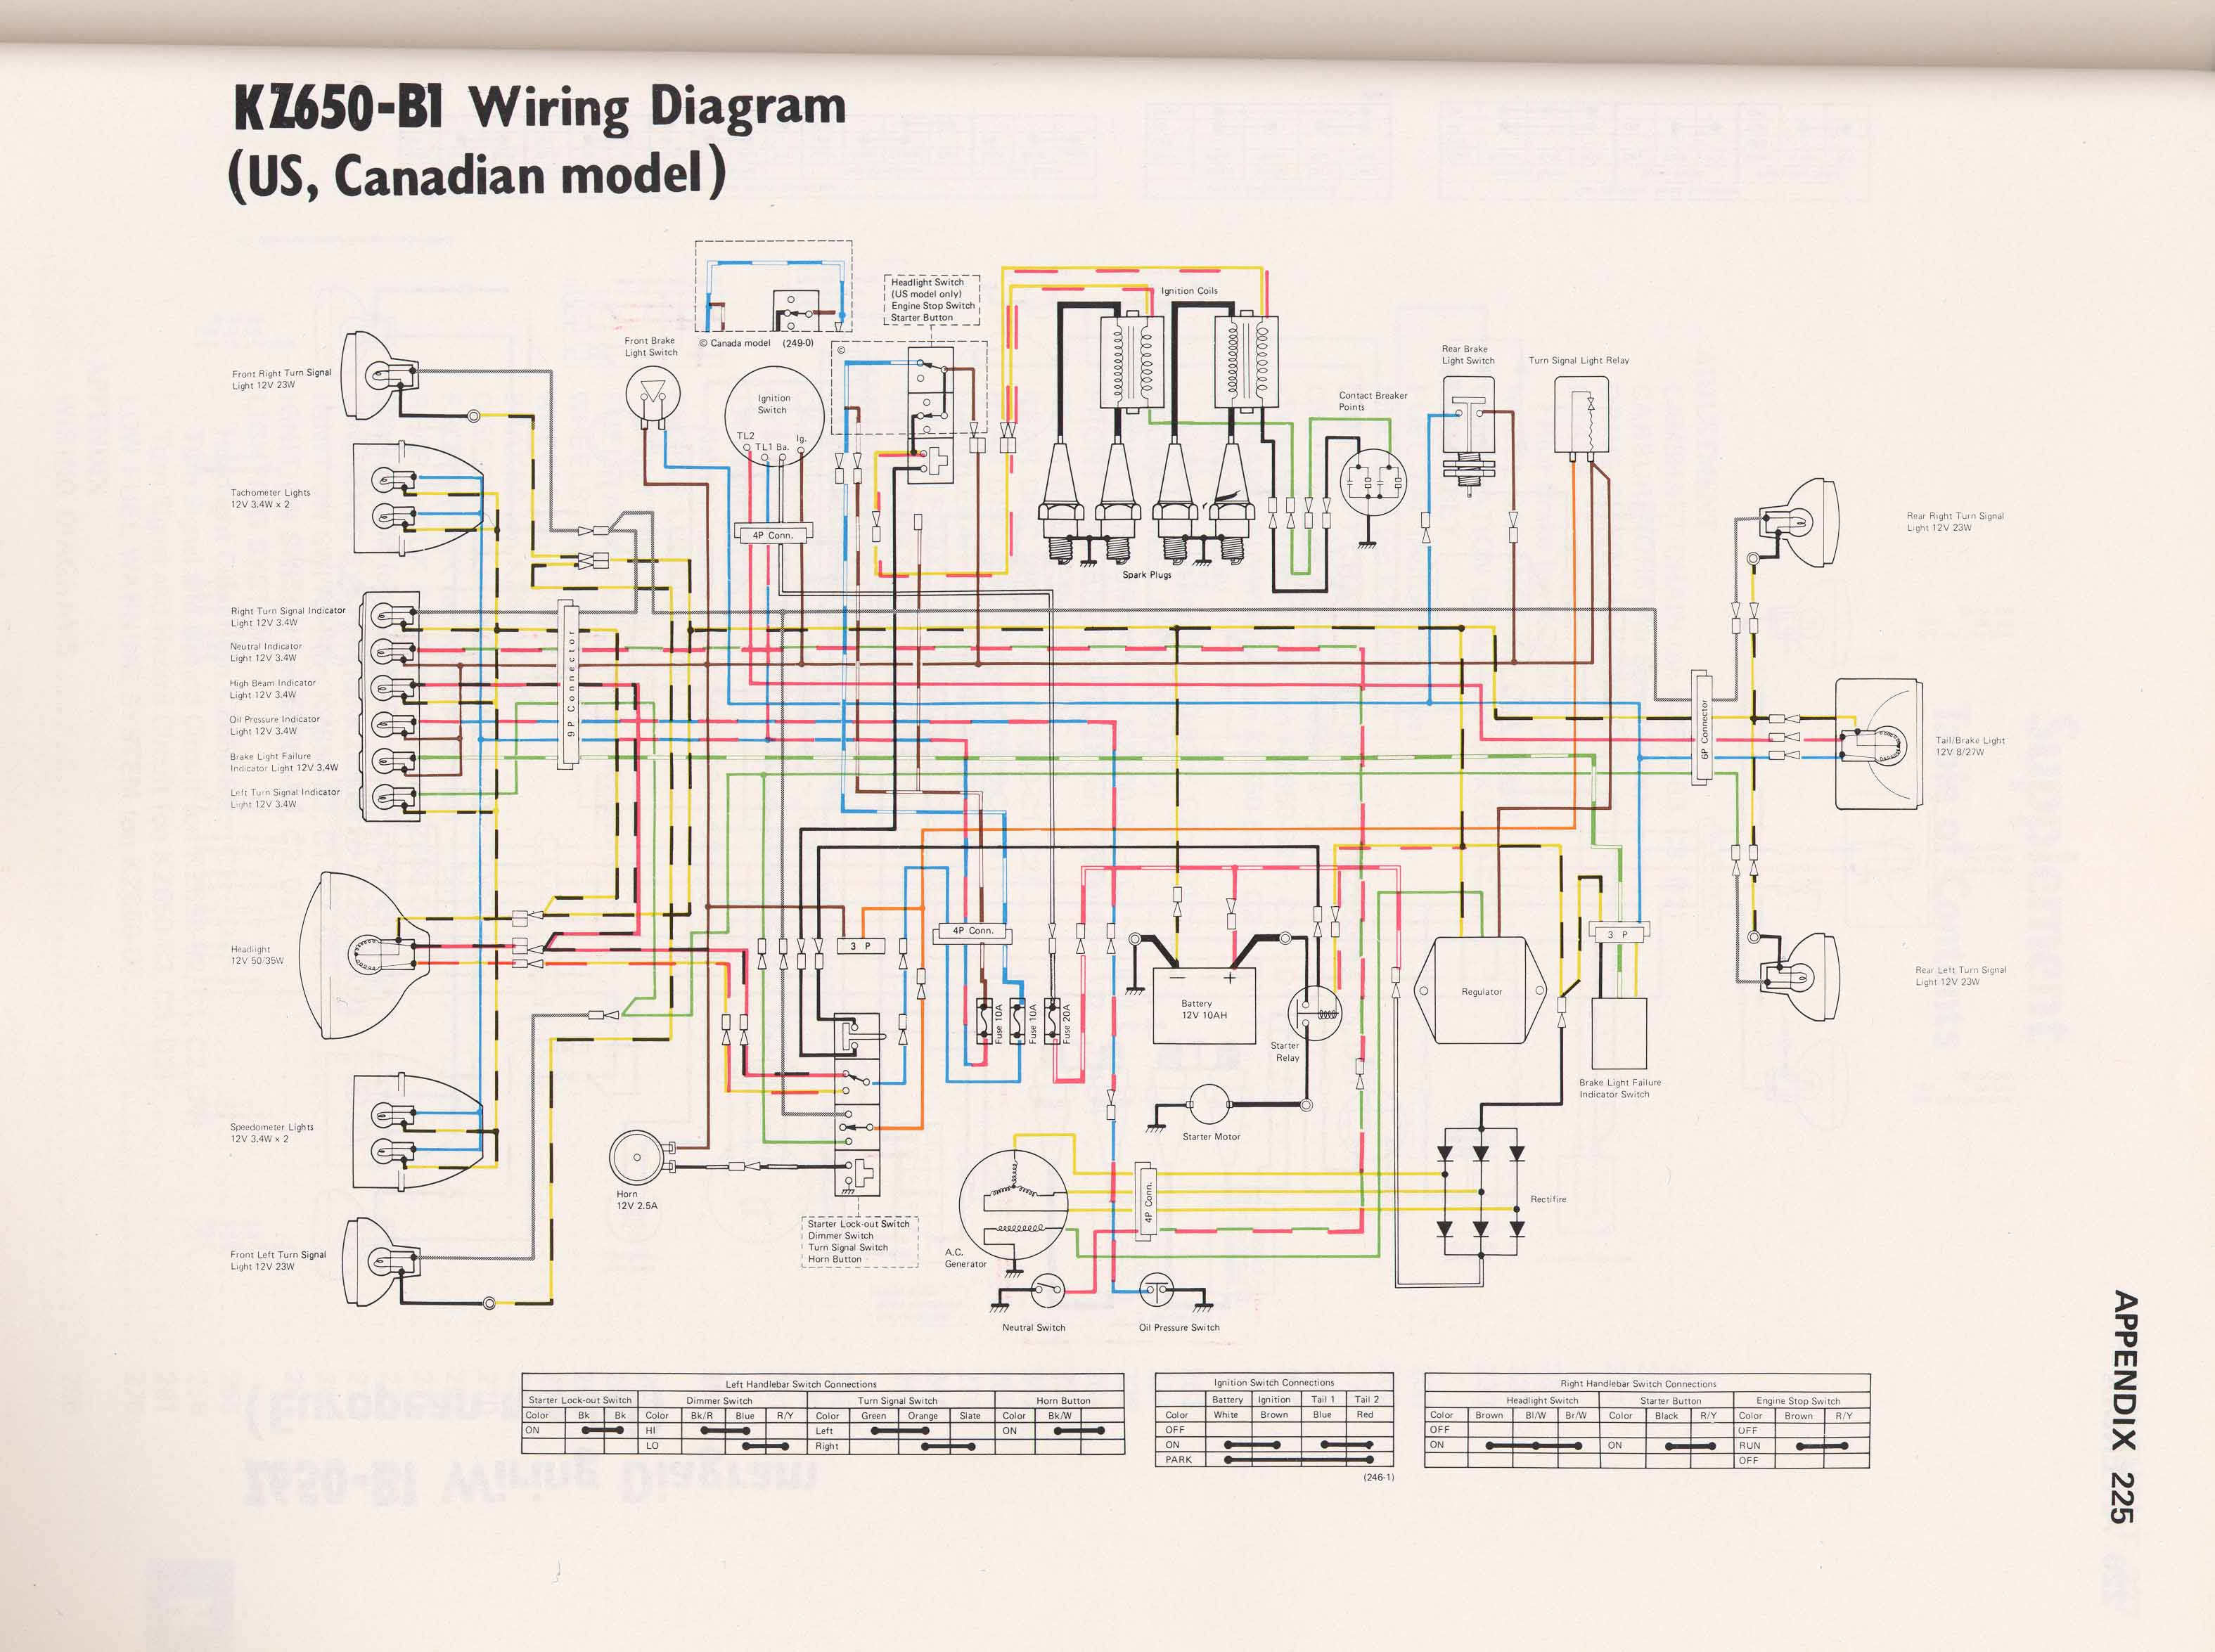 KZ650 B1 kz650 info wiring diagrams 1980 kawasaki kz440 wiring diagram at readyjetset.co